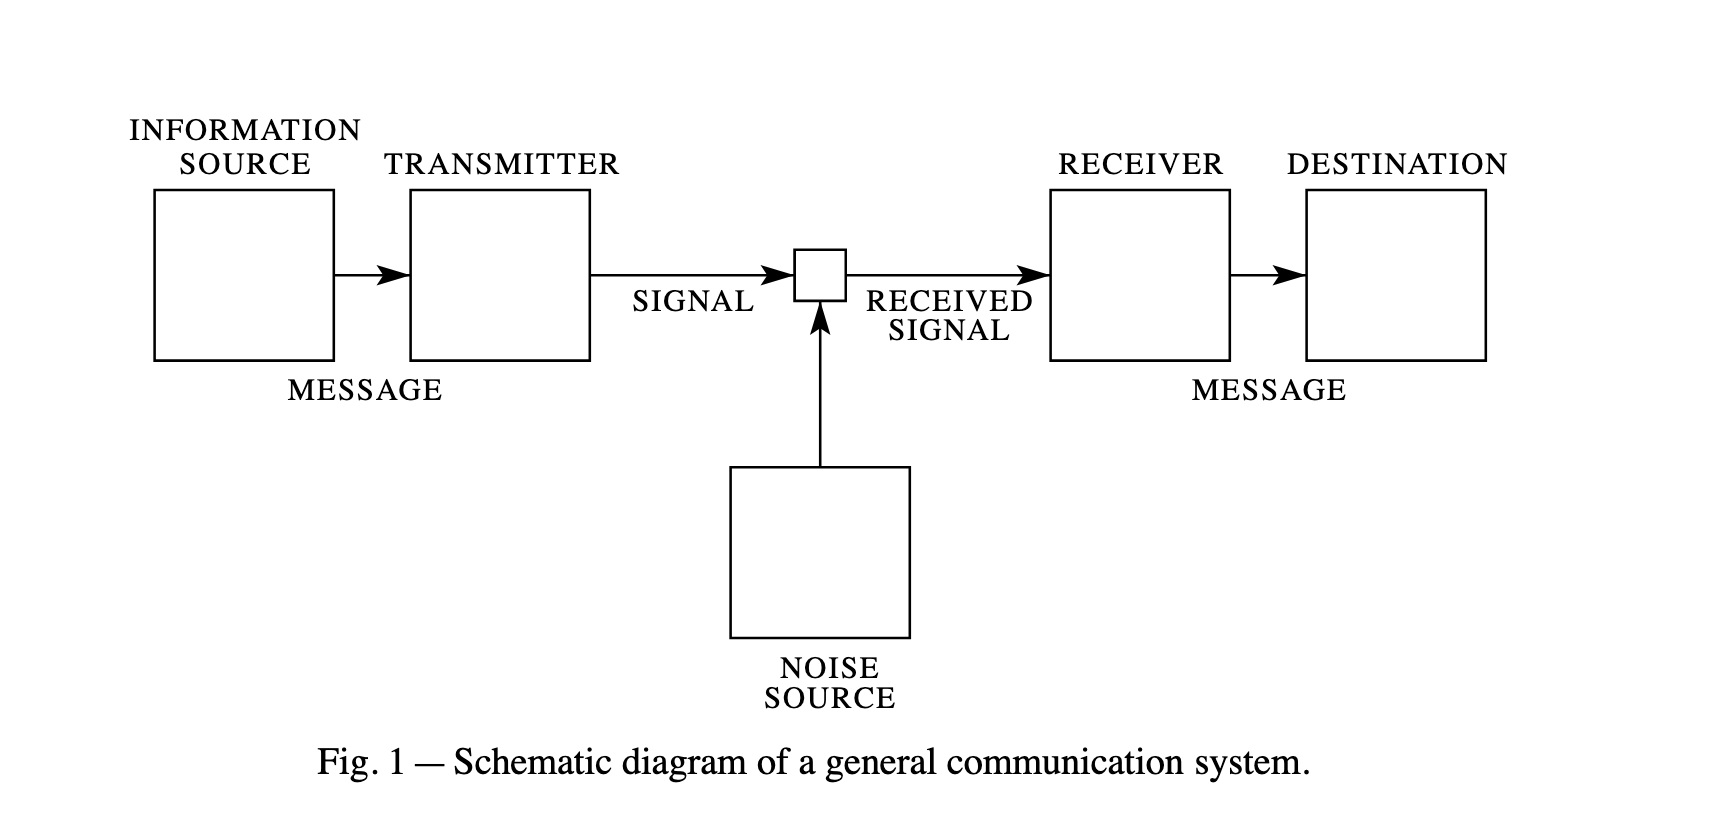 Diagram of general communication system, per Claude Shannon's 1948 paper